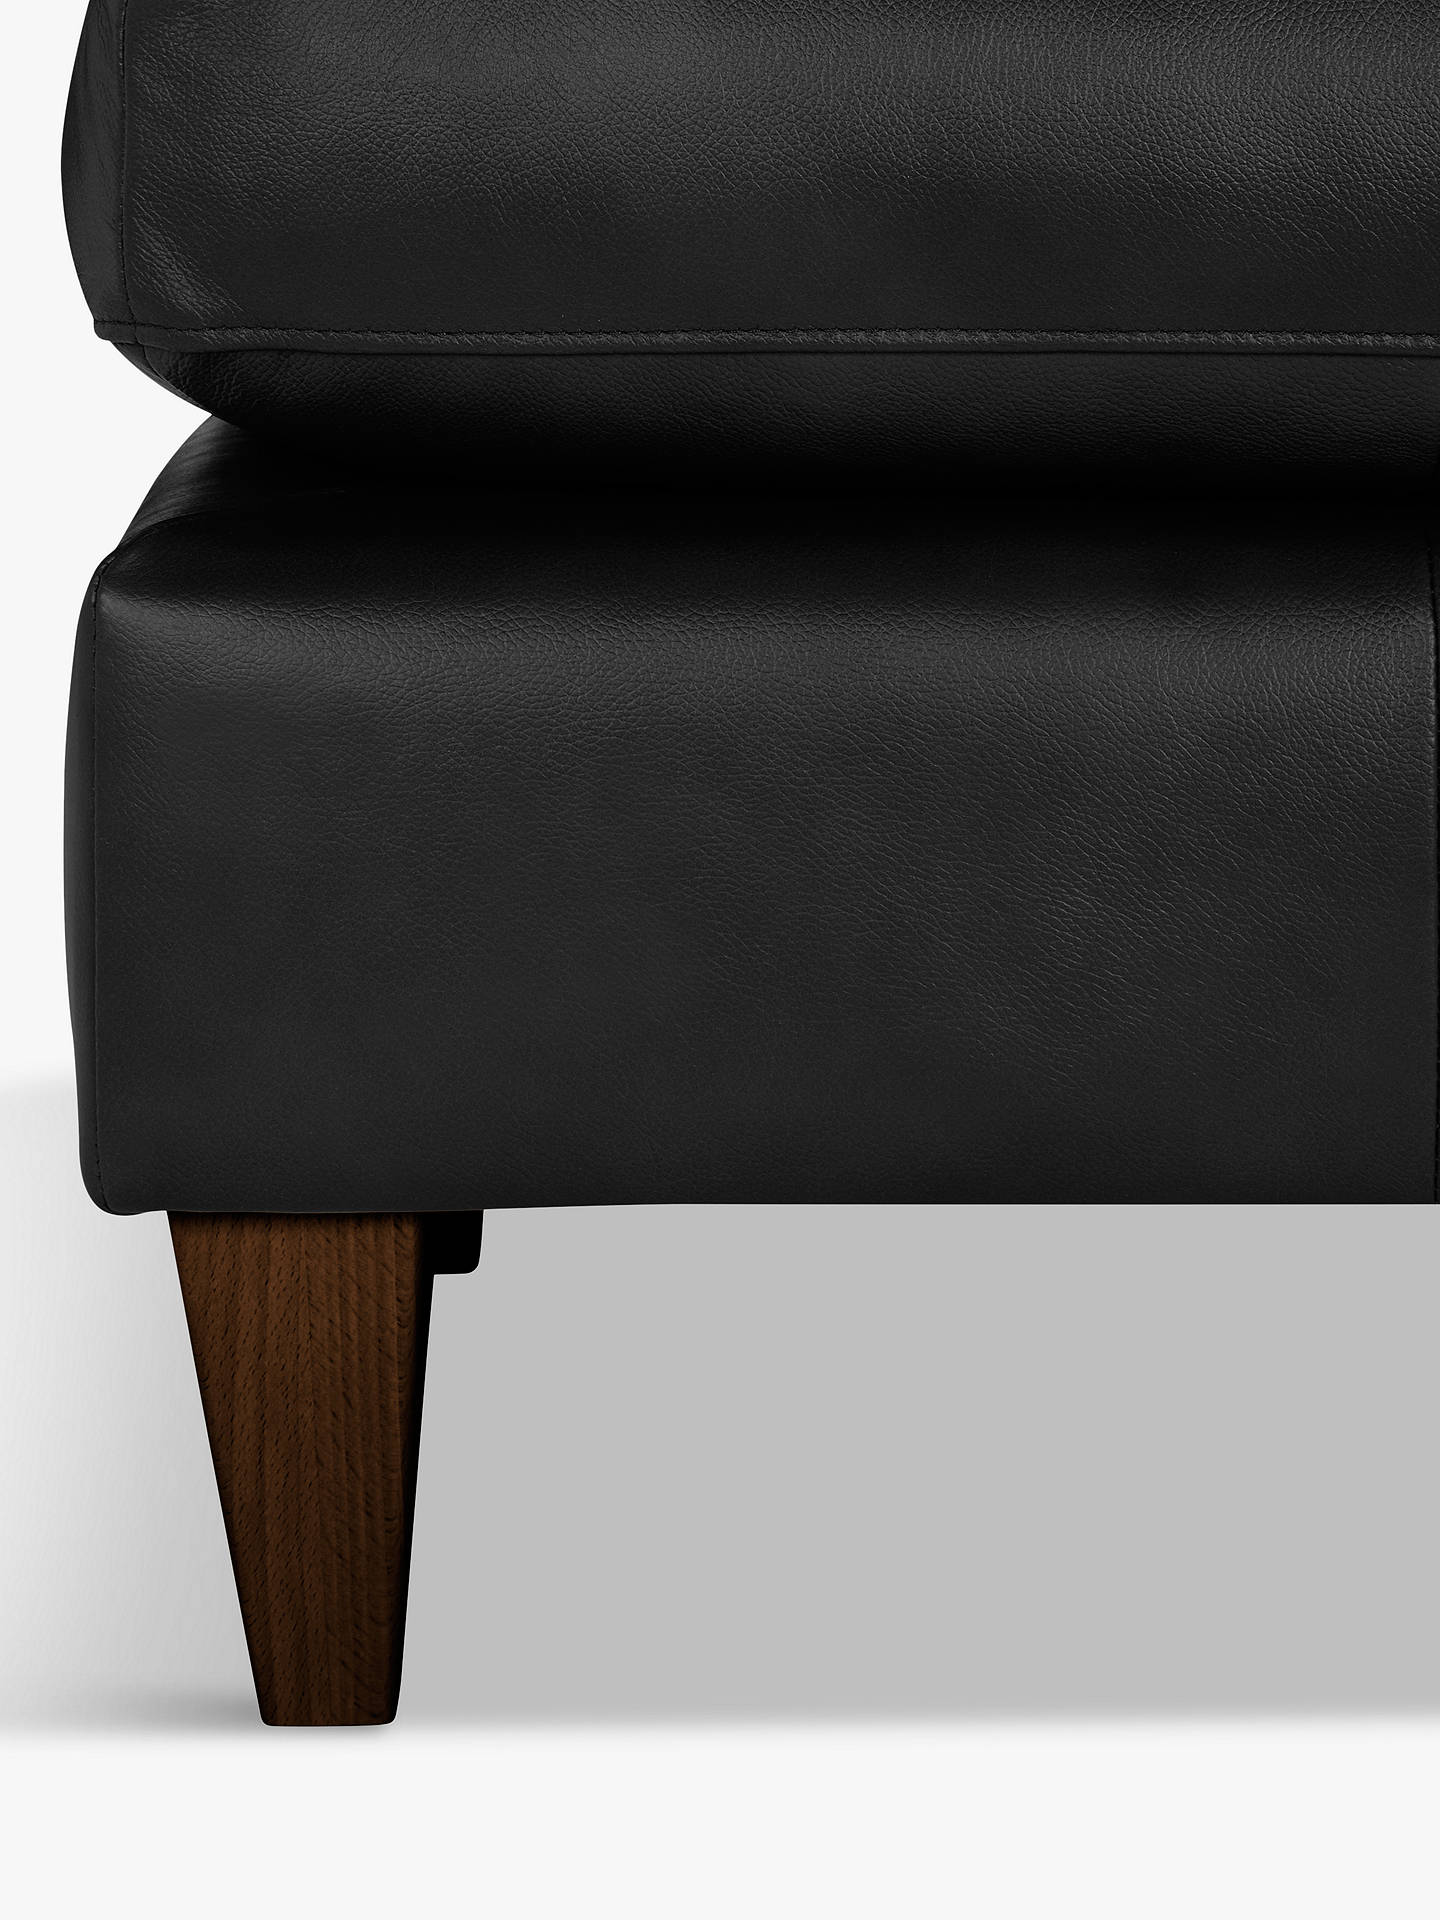 BuyJohn Lewis & Partners Bailey Leather Footstool, Dark Leg, Nature Black Online at johnlewis.com